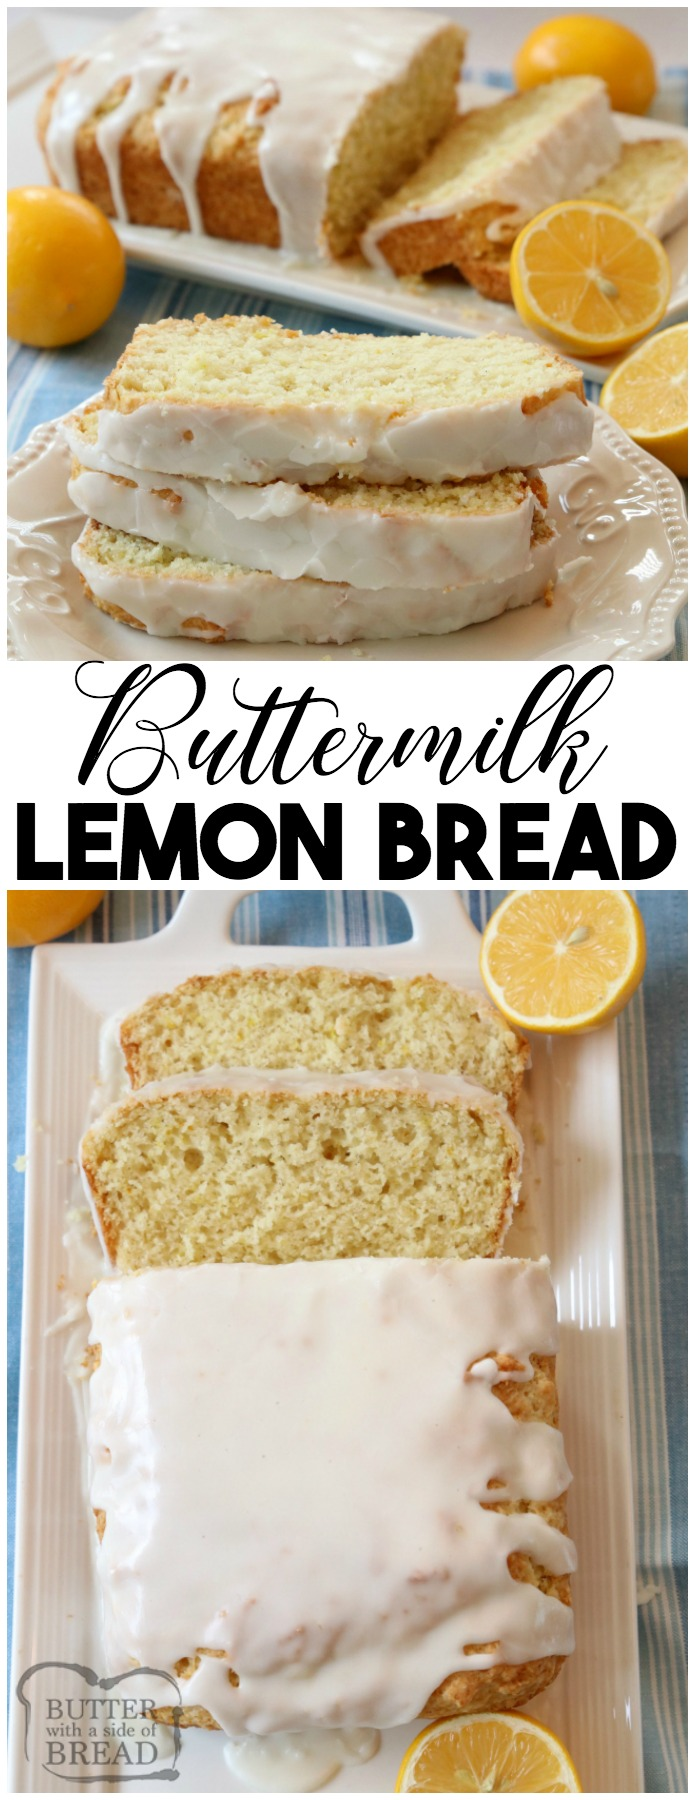 Lemon Buttermilk Bread recipe made with simple ingredients and topped with a bright, fresh lemon glaze. Buttermilk adds a wonderful flavor and texture to this easy lemon quick bread recipe. Sweet quick bread for anyone who loves baking with lemon!